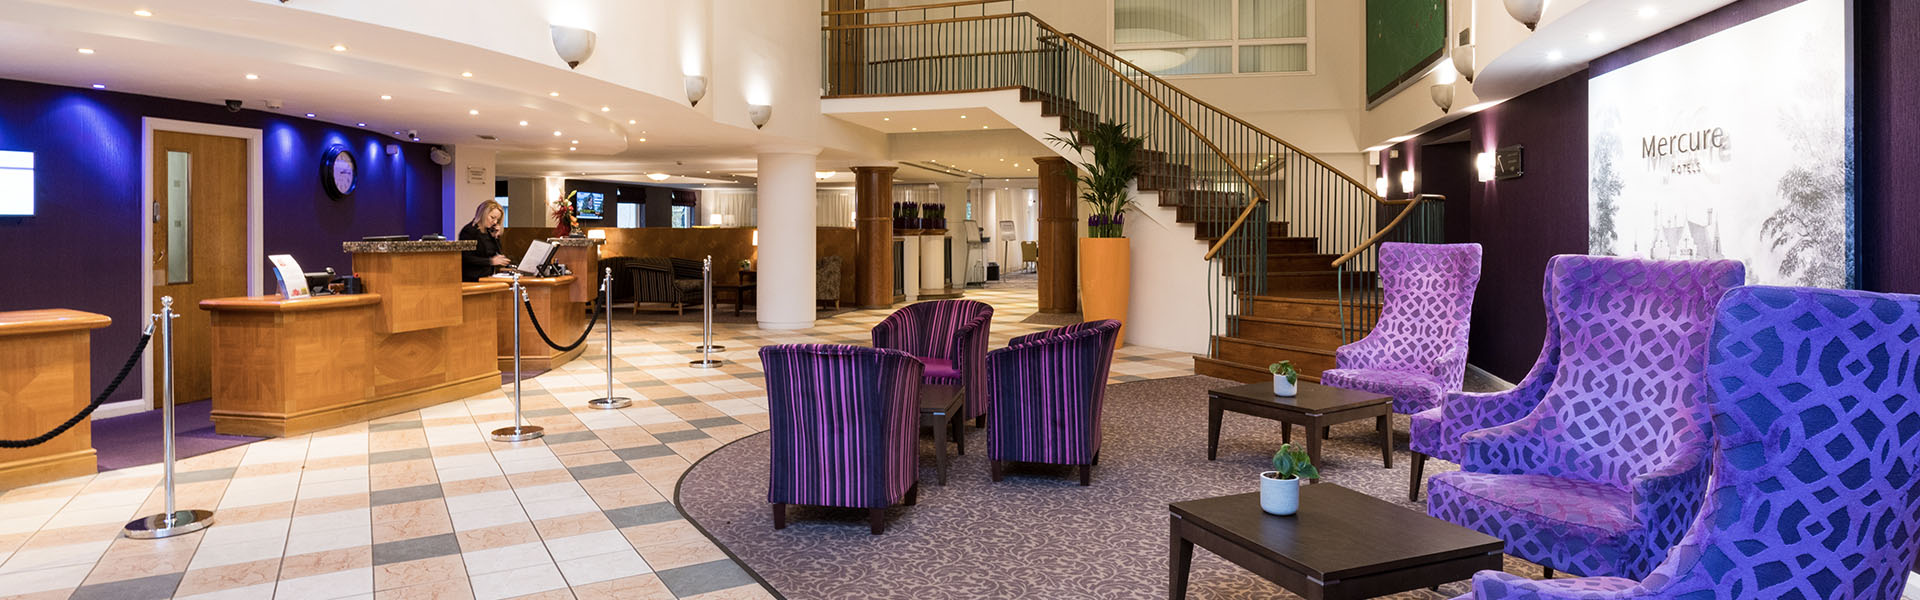 Mercure Sheffield Kenwood Hall Hotel & Spa Vine Hotel Management